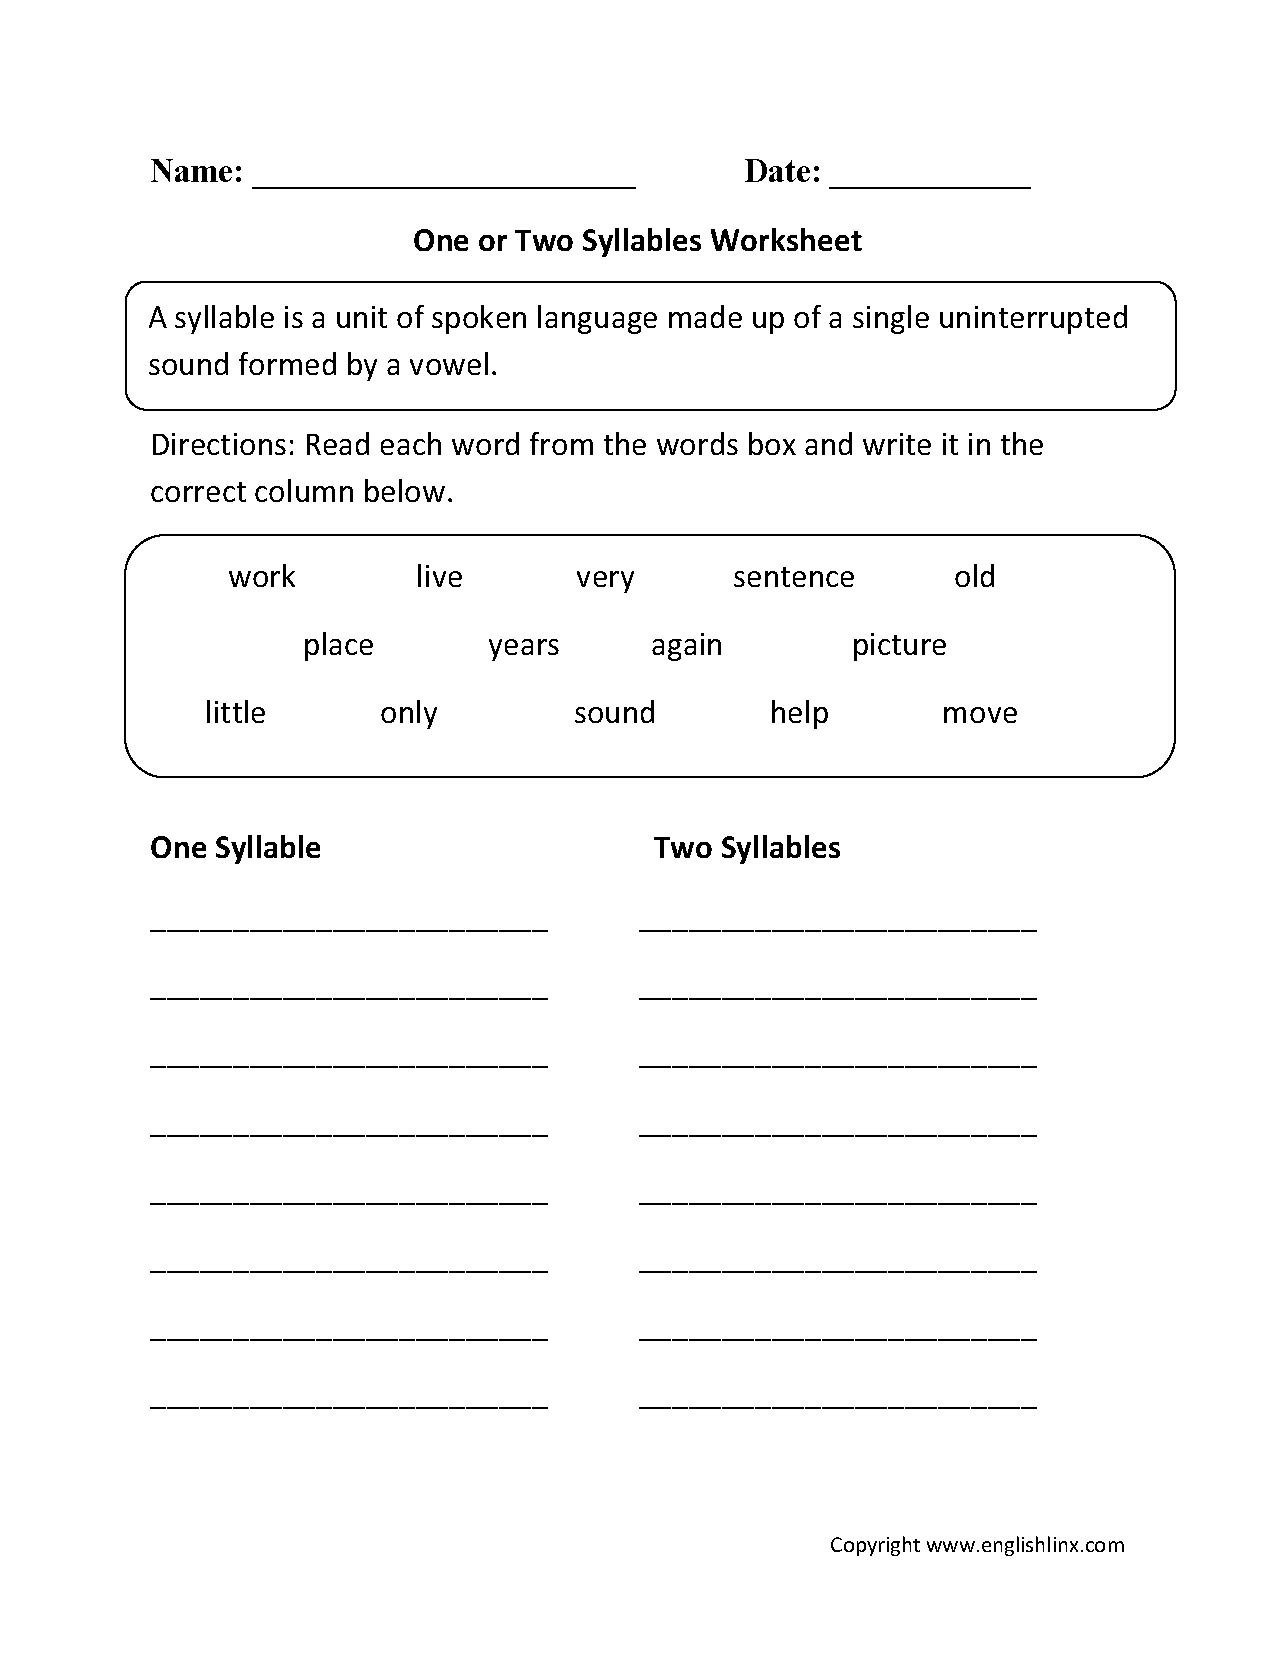 One Or Two Syllables Worksheet | 1 | Syllable, Speech Therapy - Free Printable Open And Closed Syllable Worksheets